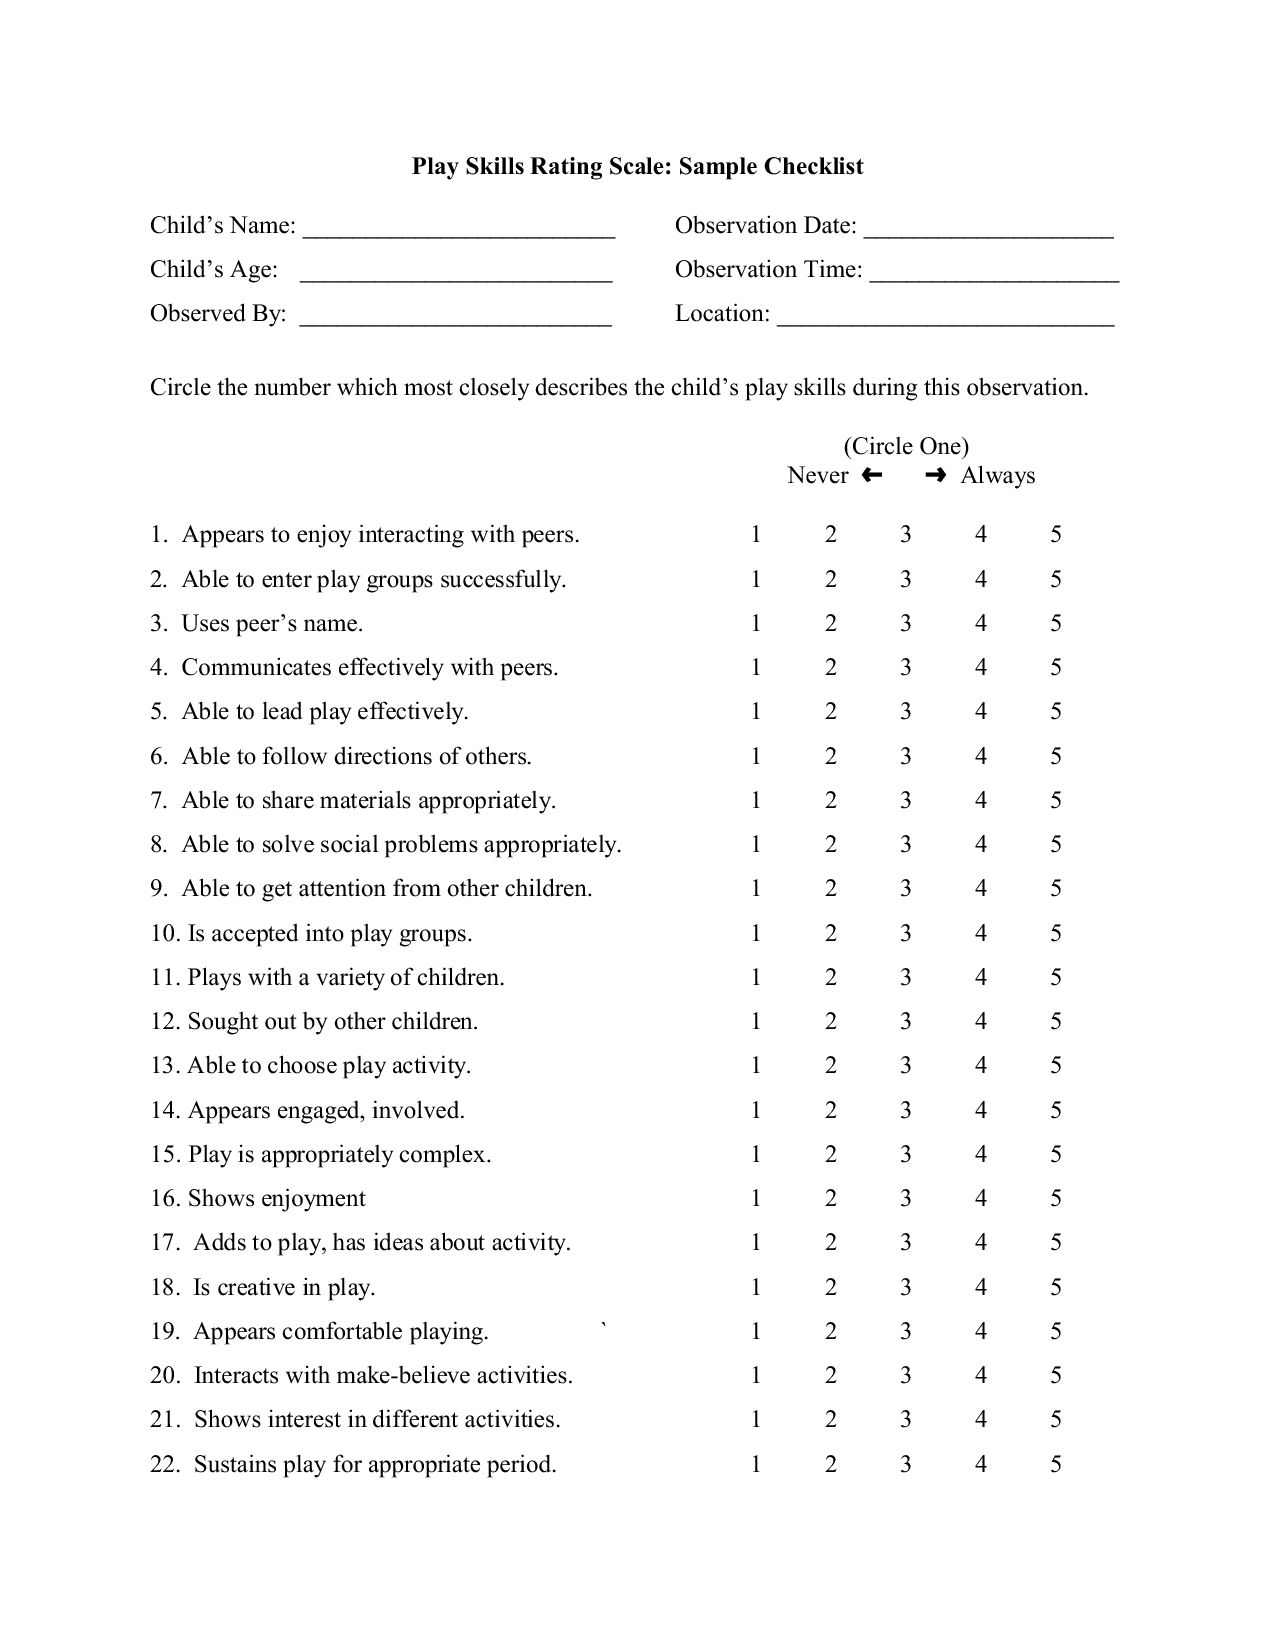 Play Skills Rating Scale